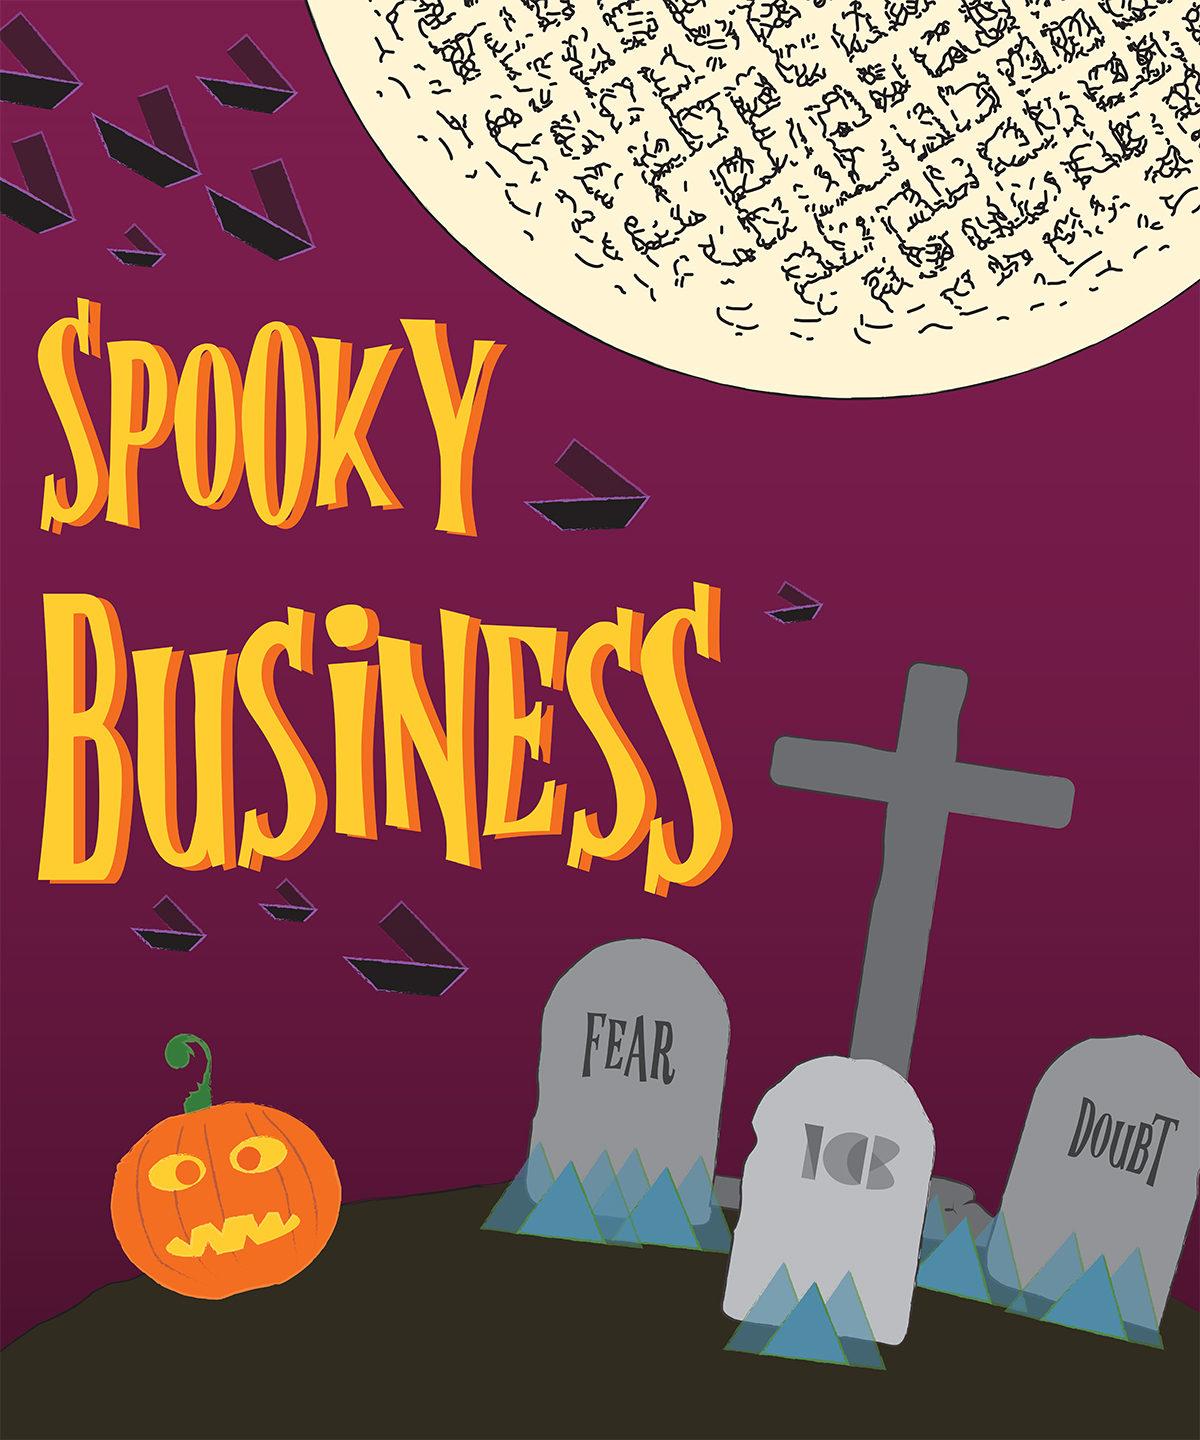 Spooky Business.jpg